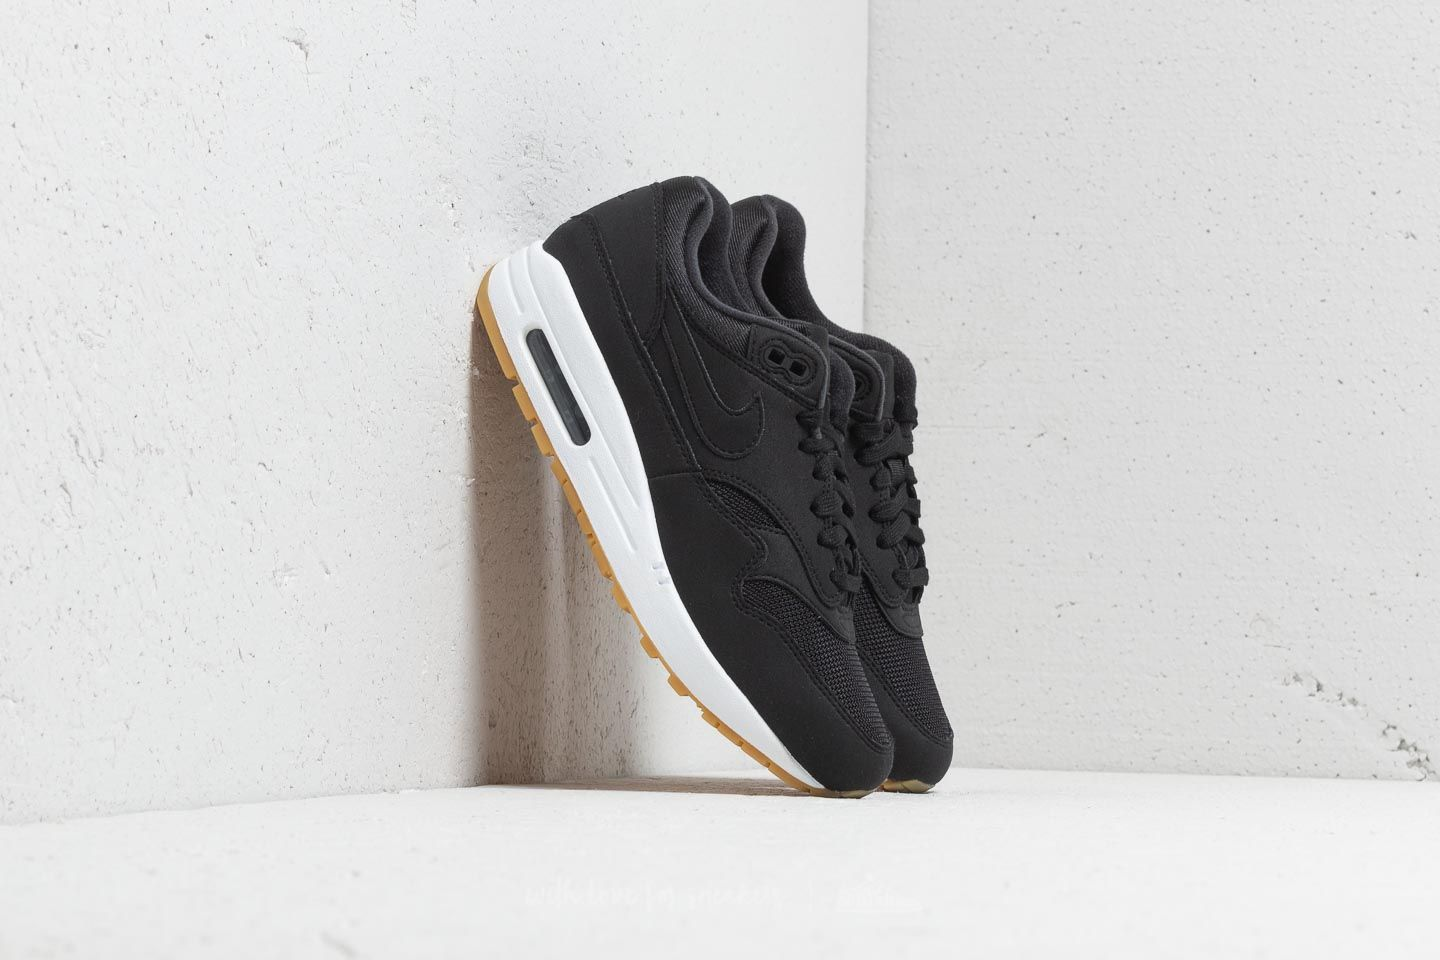 Nike Wmns Air Max 1 Black/ Black-Gum Light Brown